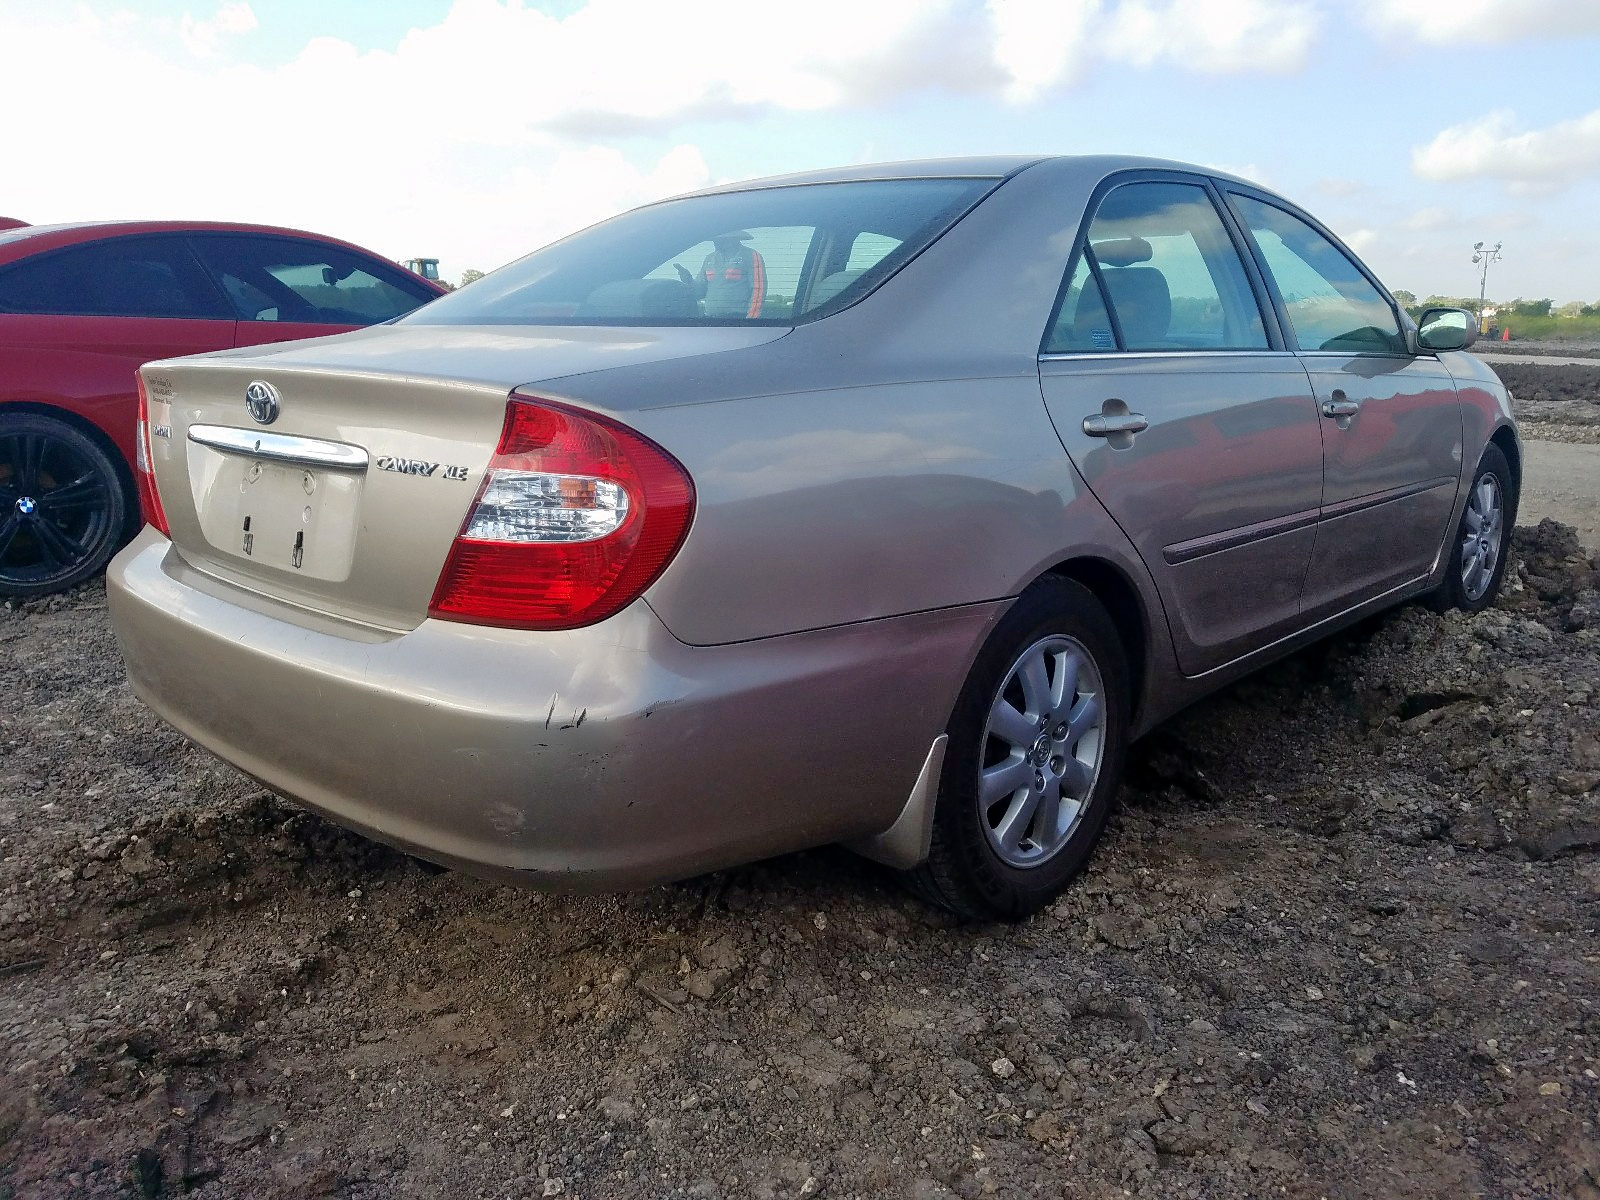 2002 Toyota Camry Le 2.4L rear view